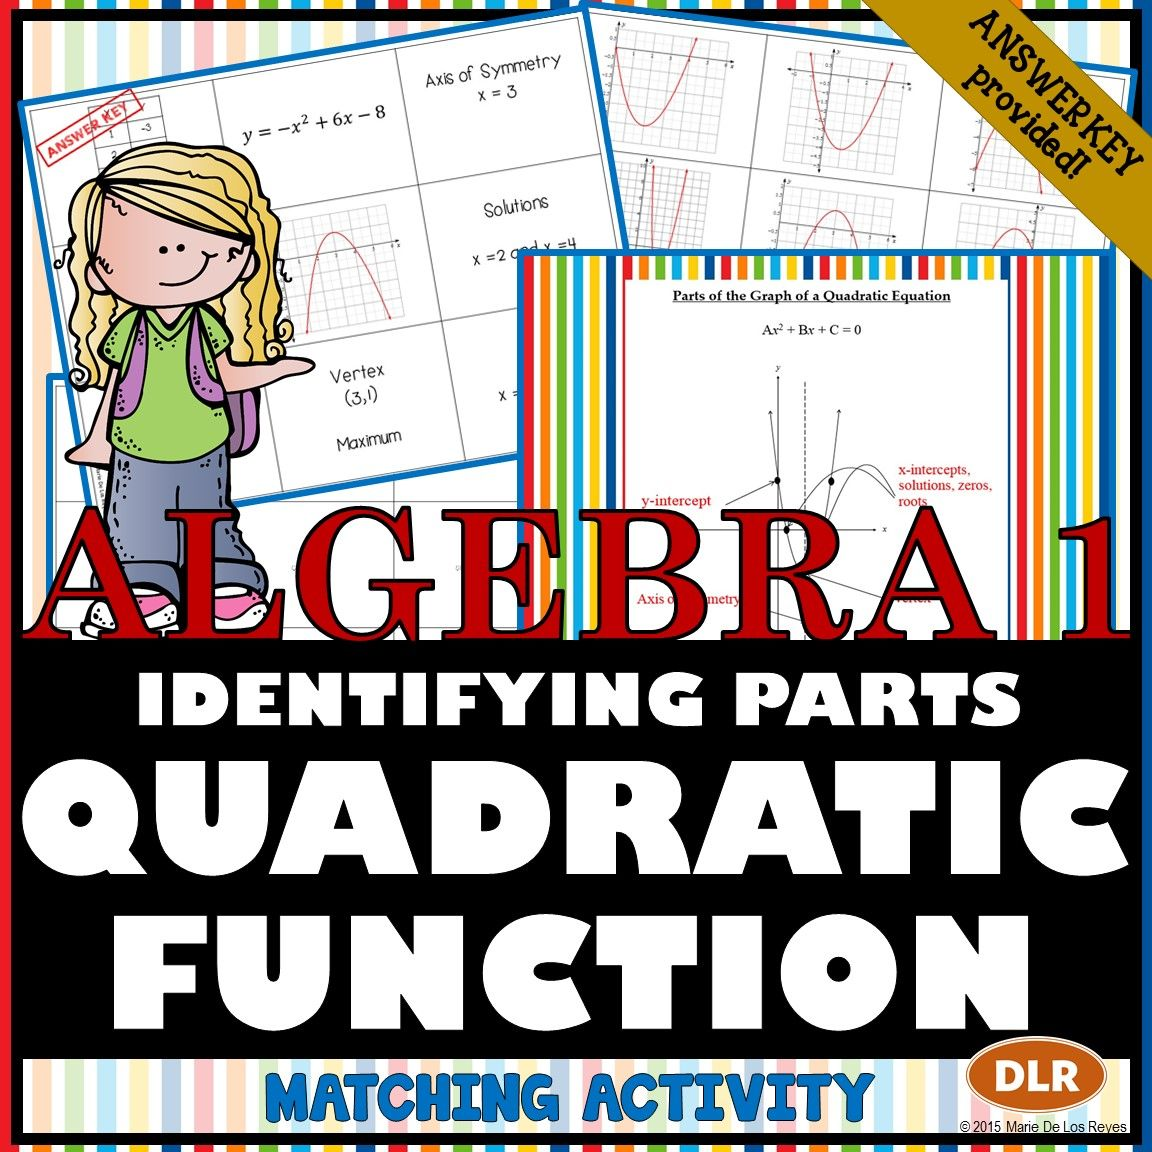 Identifying The Parts Of The Quadratic Equation Matching Activity